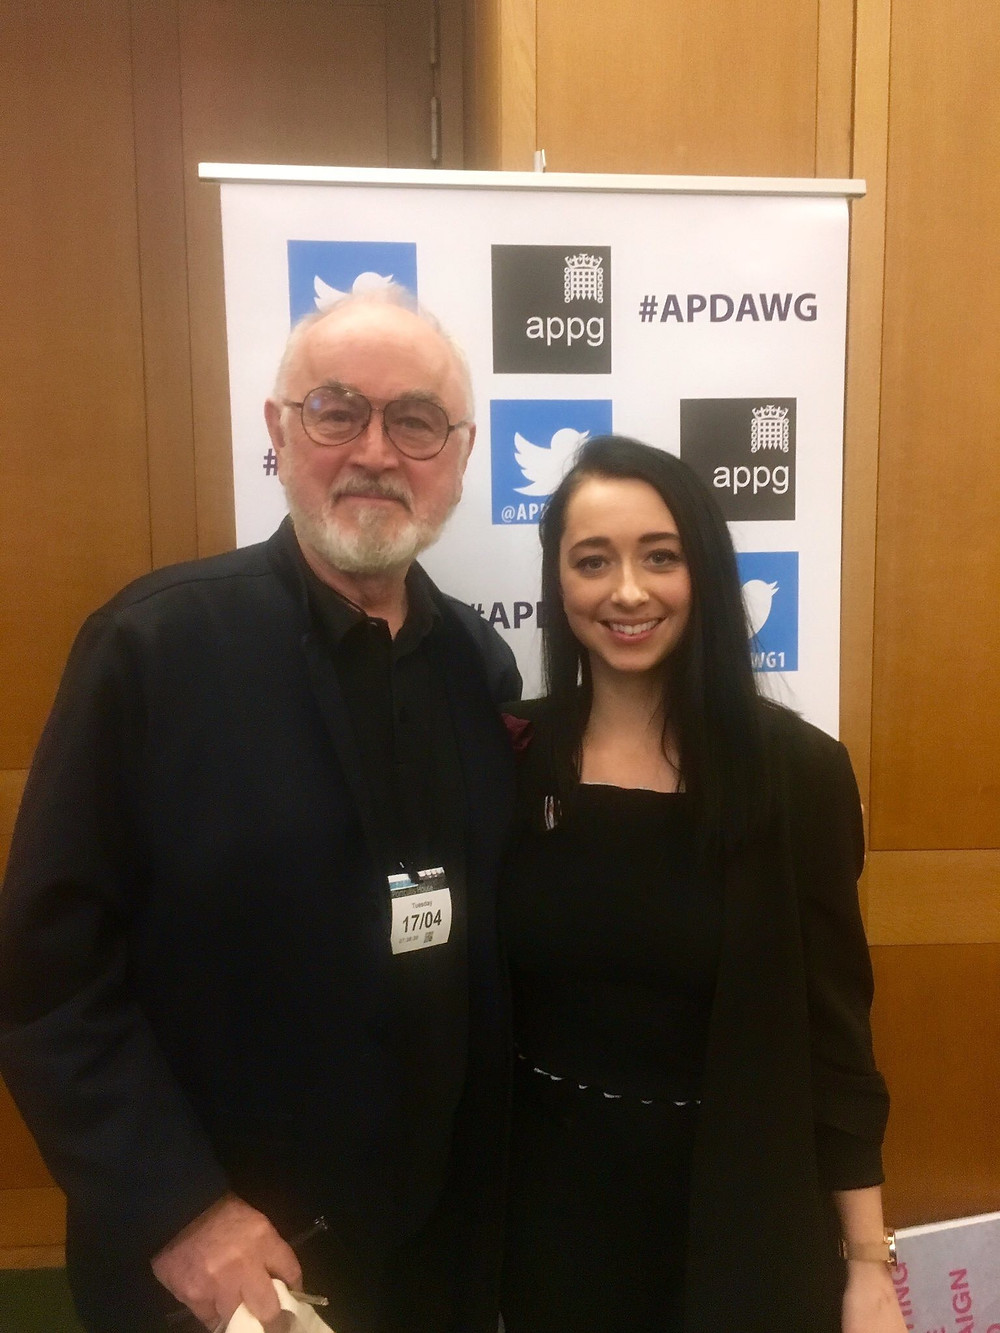 Actor Peter Egan & Shakira Free Miles, founder of The SaveABulls